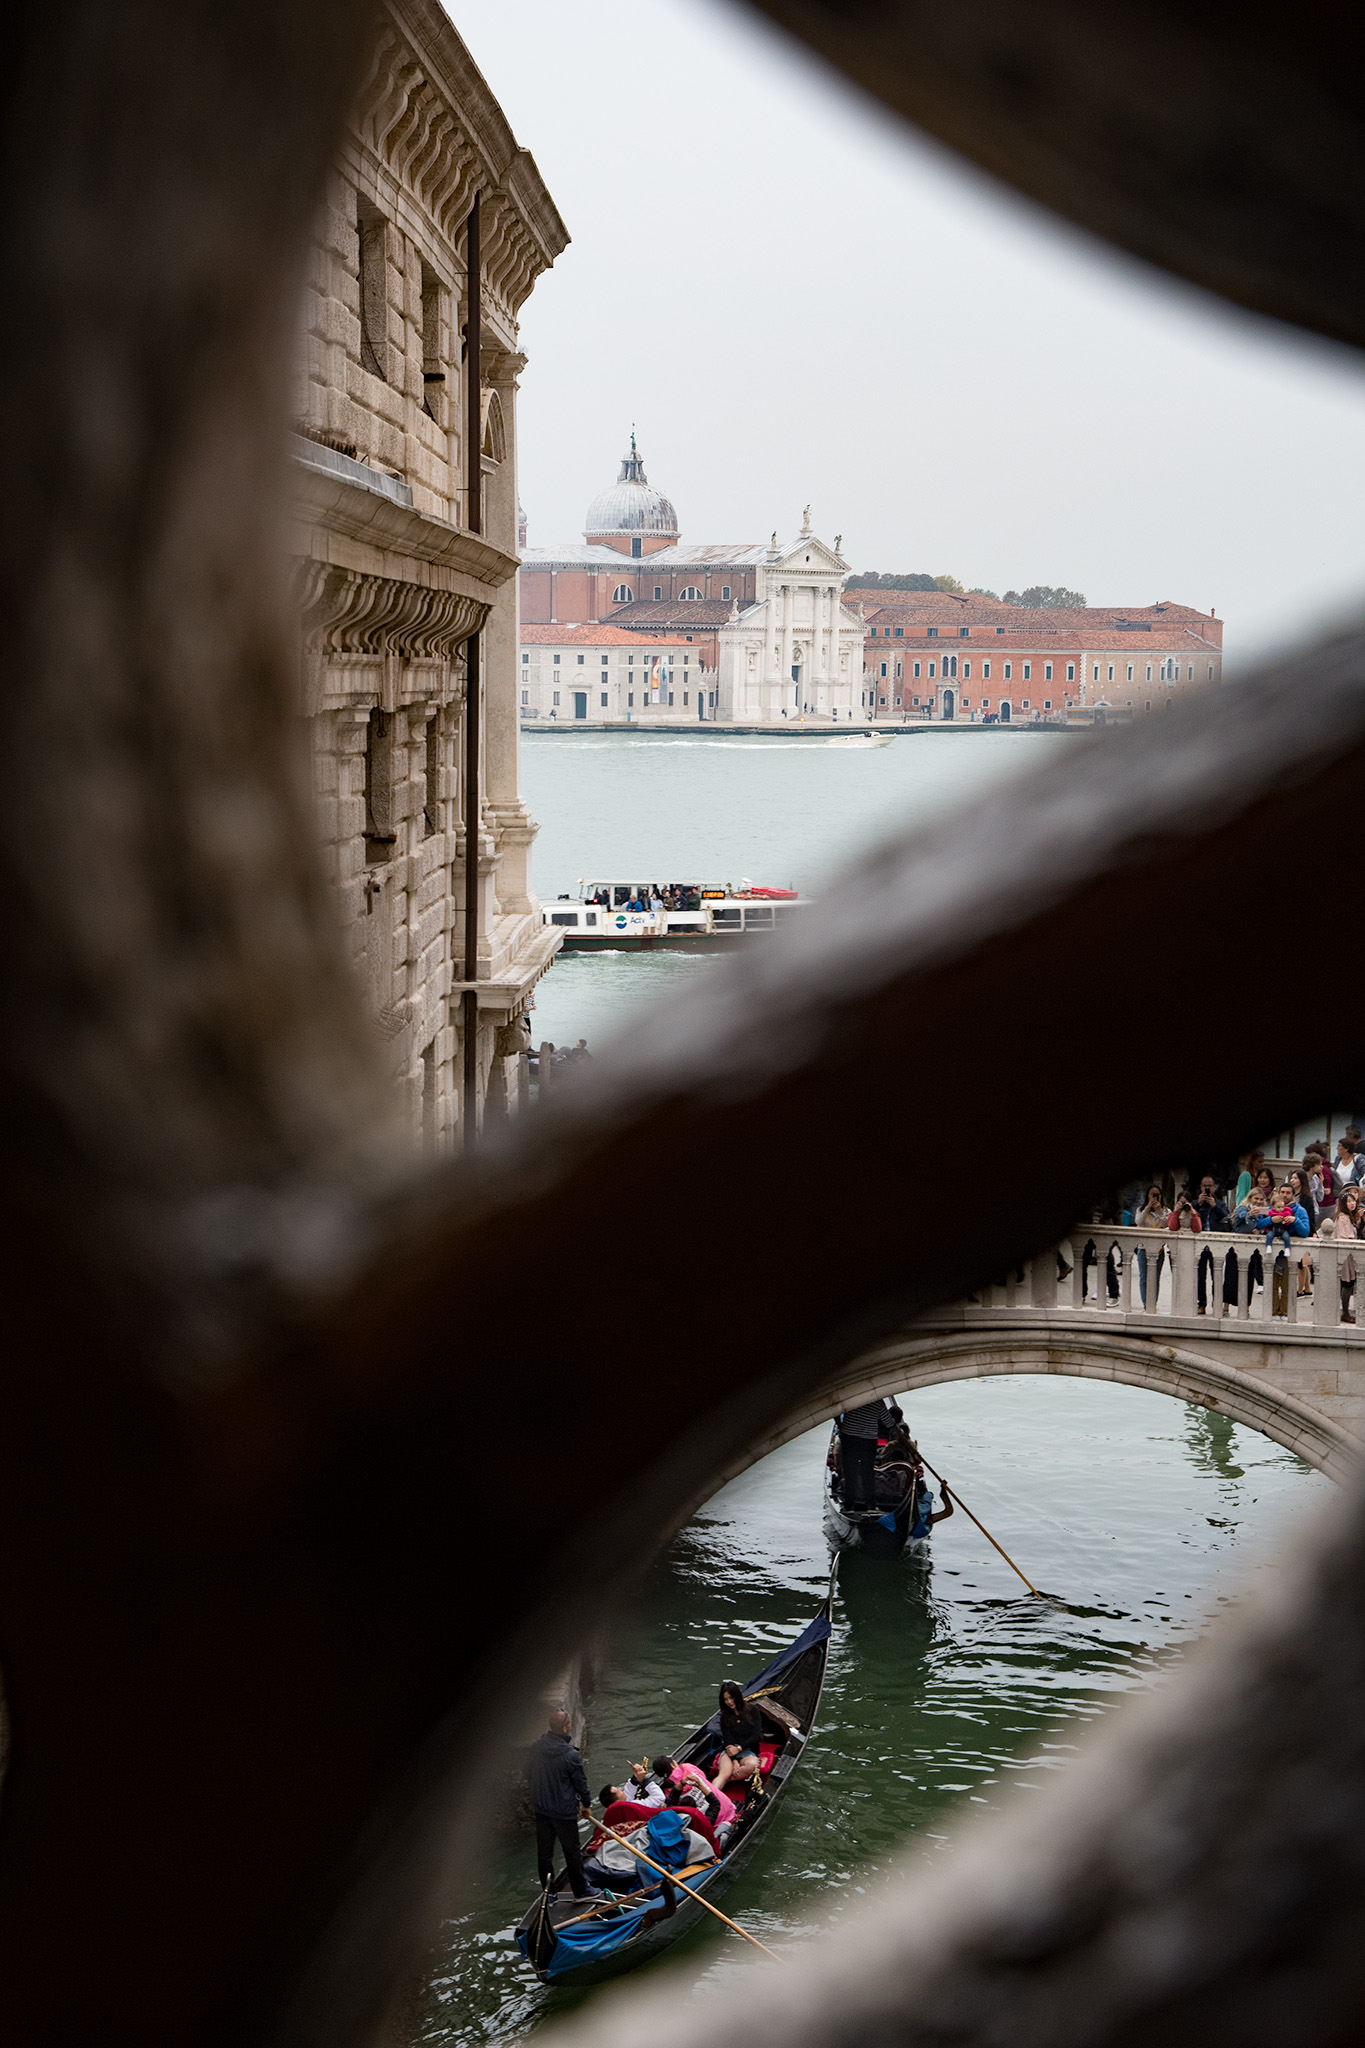 "The view prisoners would have had moving from the courts in Doges Palace to the prison along the ""Bridge of Sighs' Today, it's a view of dozens of tourists on Ponte della Paglia, jockeying for view of the Bridge of Sighs!"